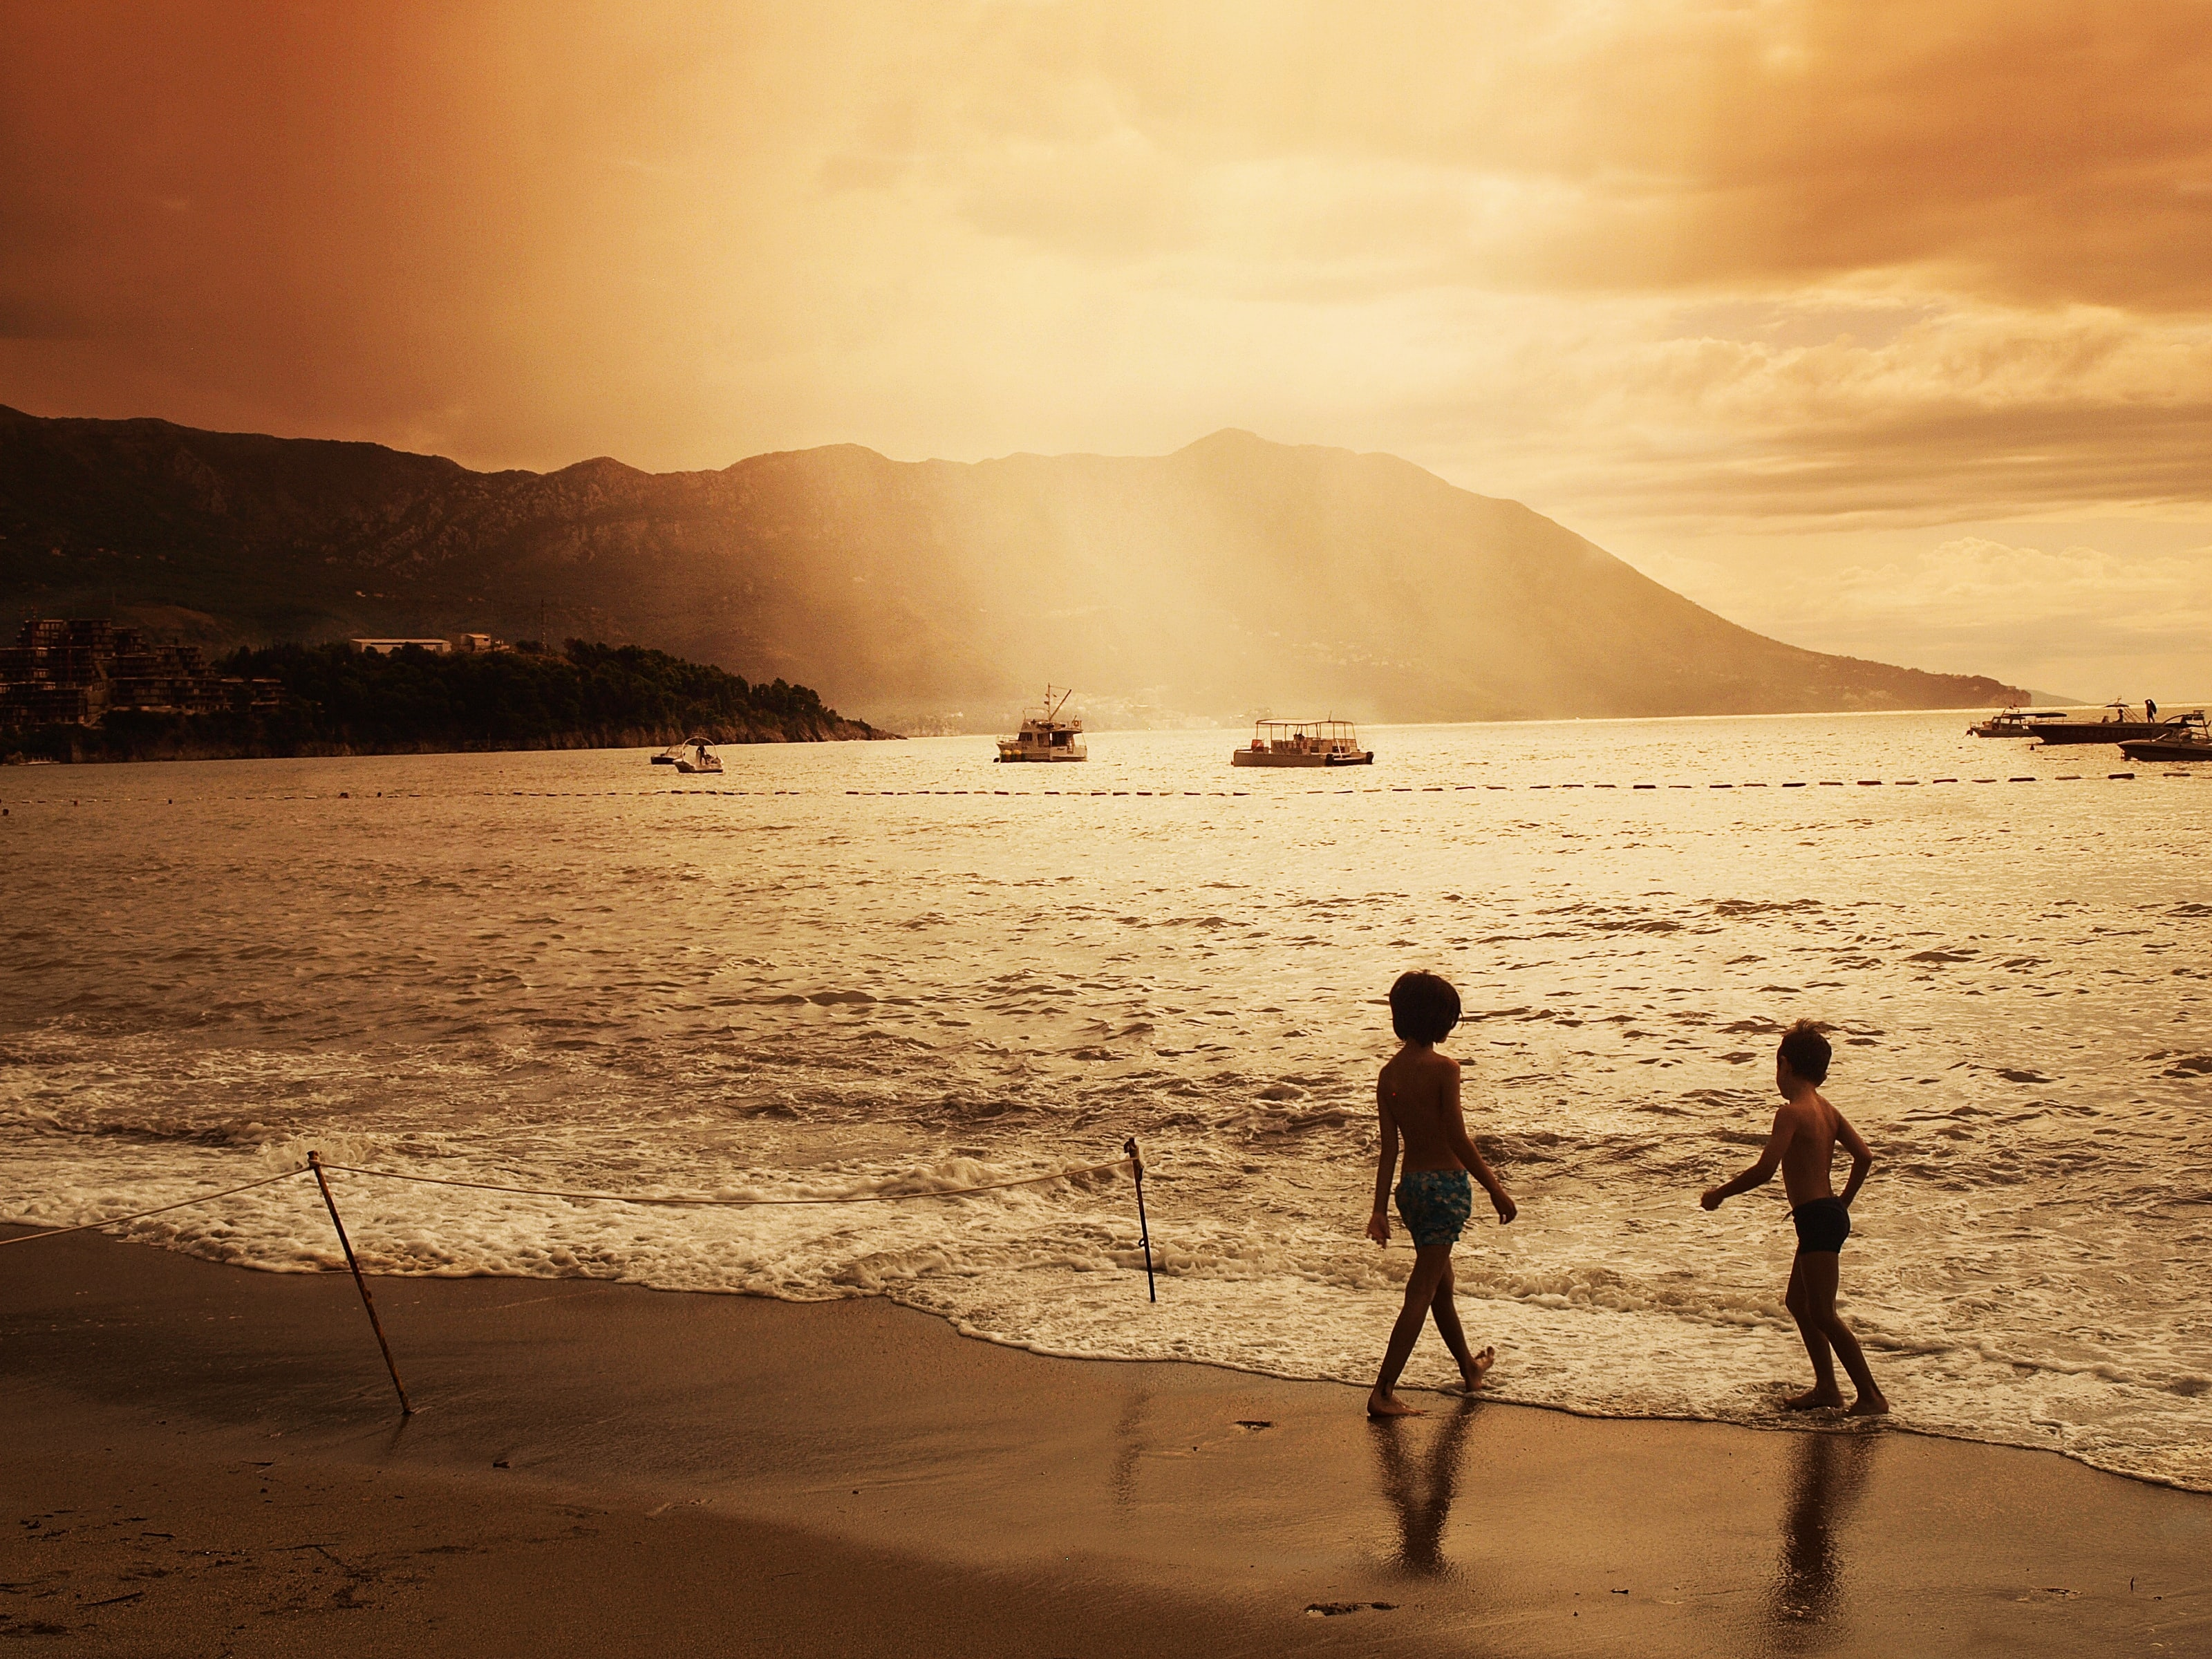 two children walking on beach during sunset